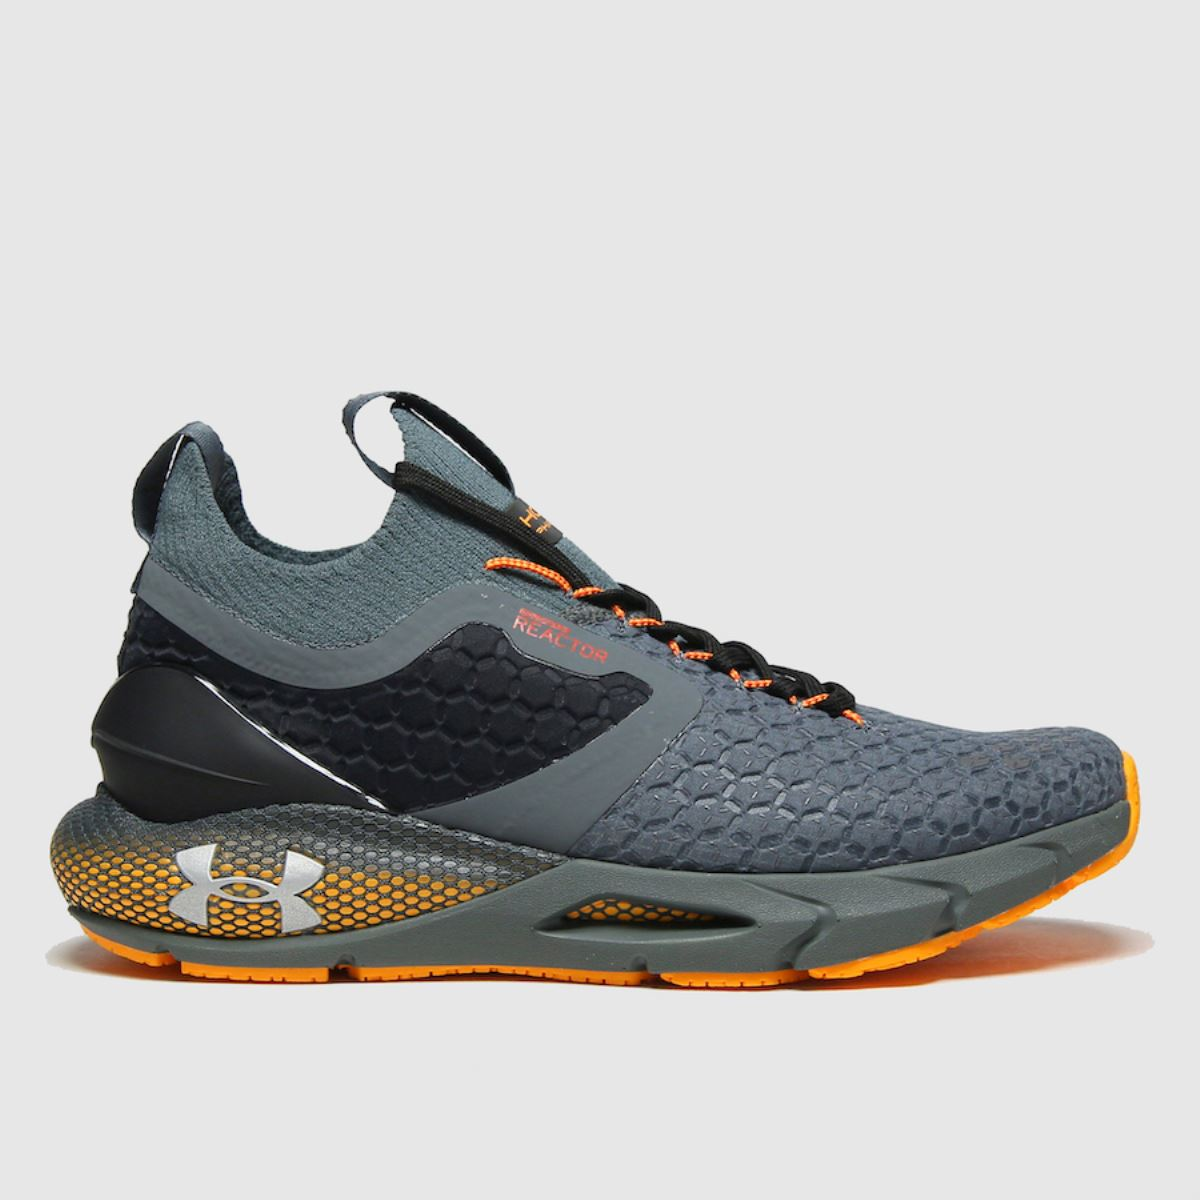 Under Armour Black & Grey Hovr 2 Cg Reactor Trainers